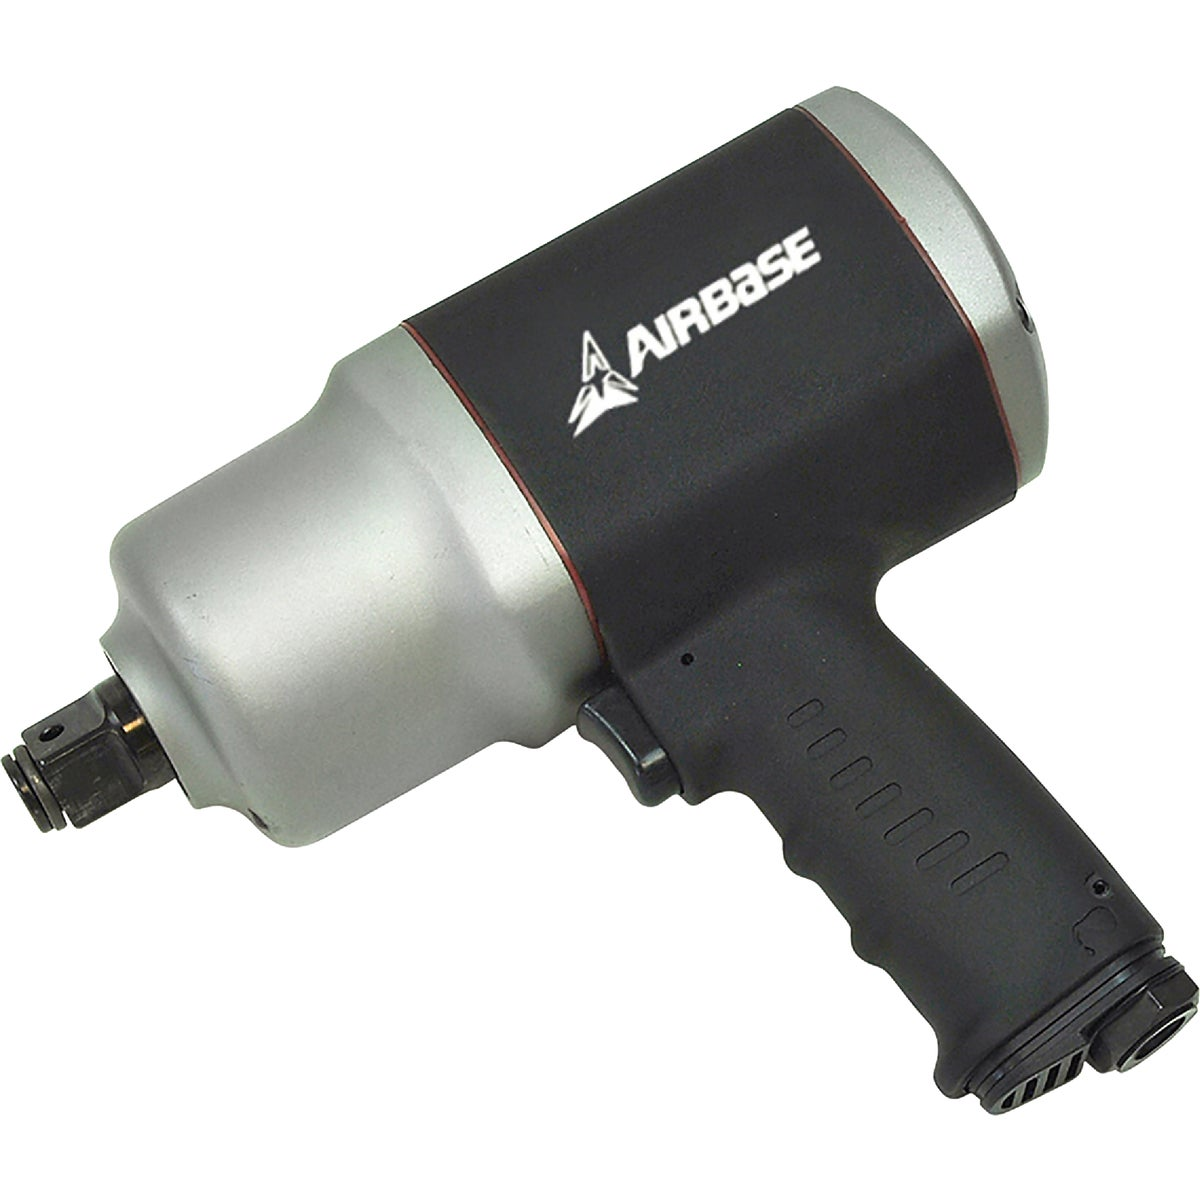 3/4 INDUST IMPACT WRENCH - 1600-TH by Aircat Pneumatic Tools